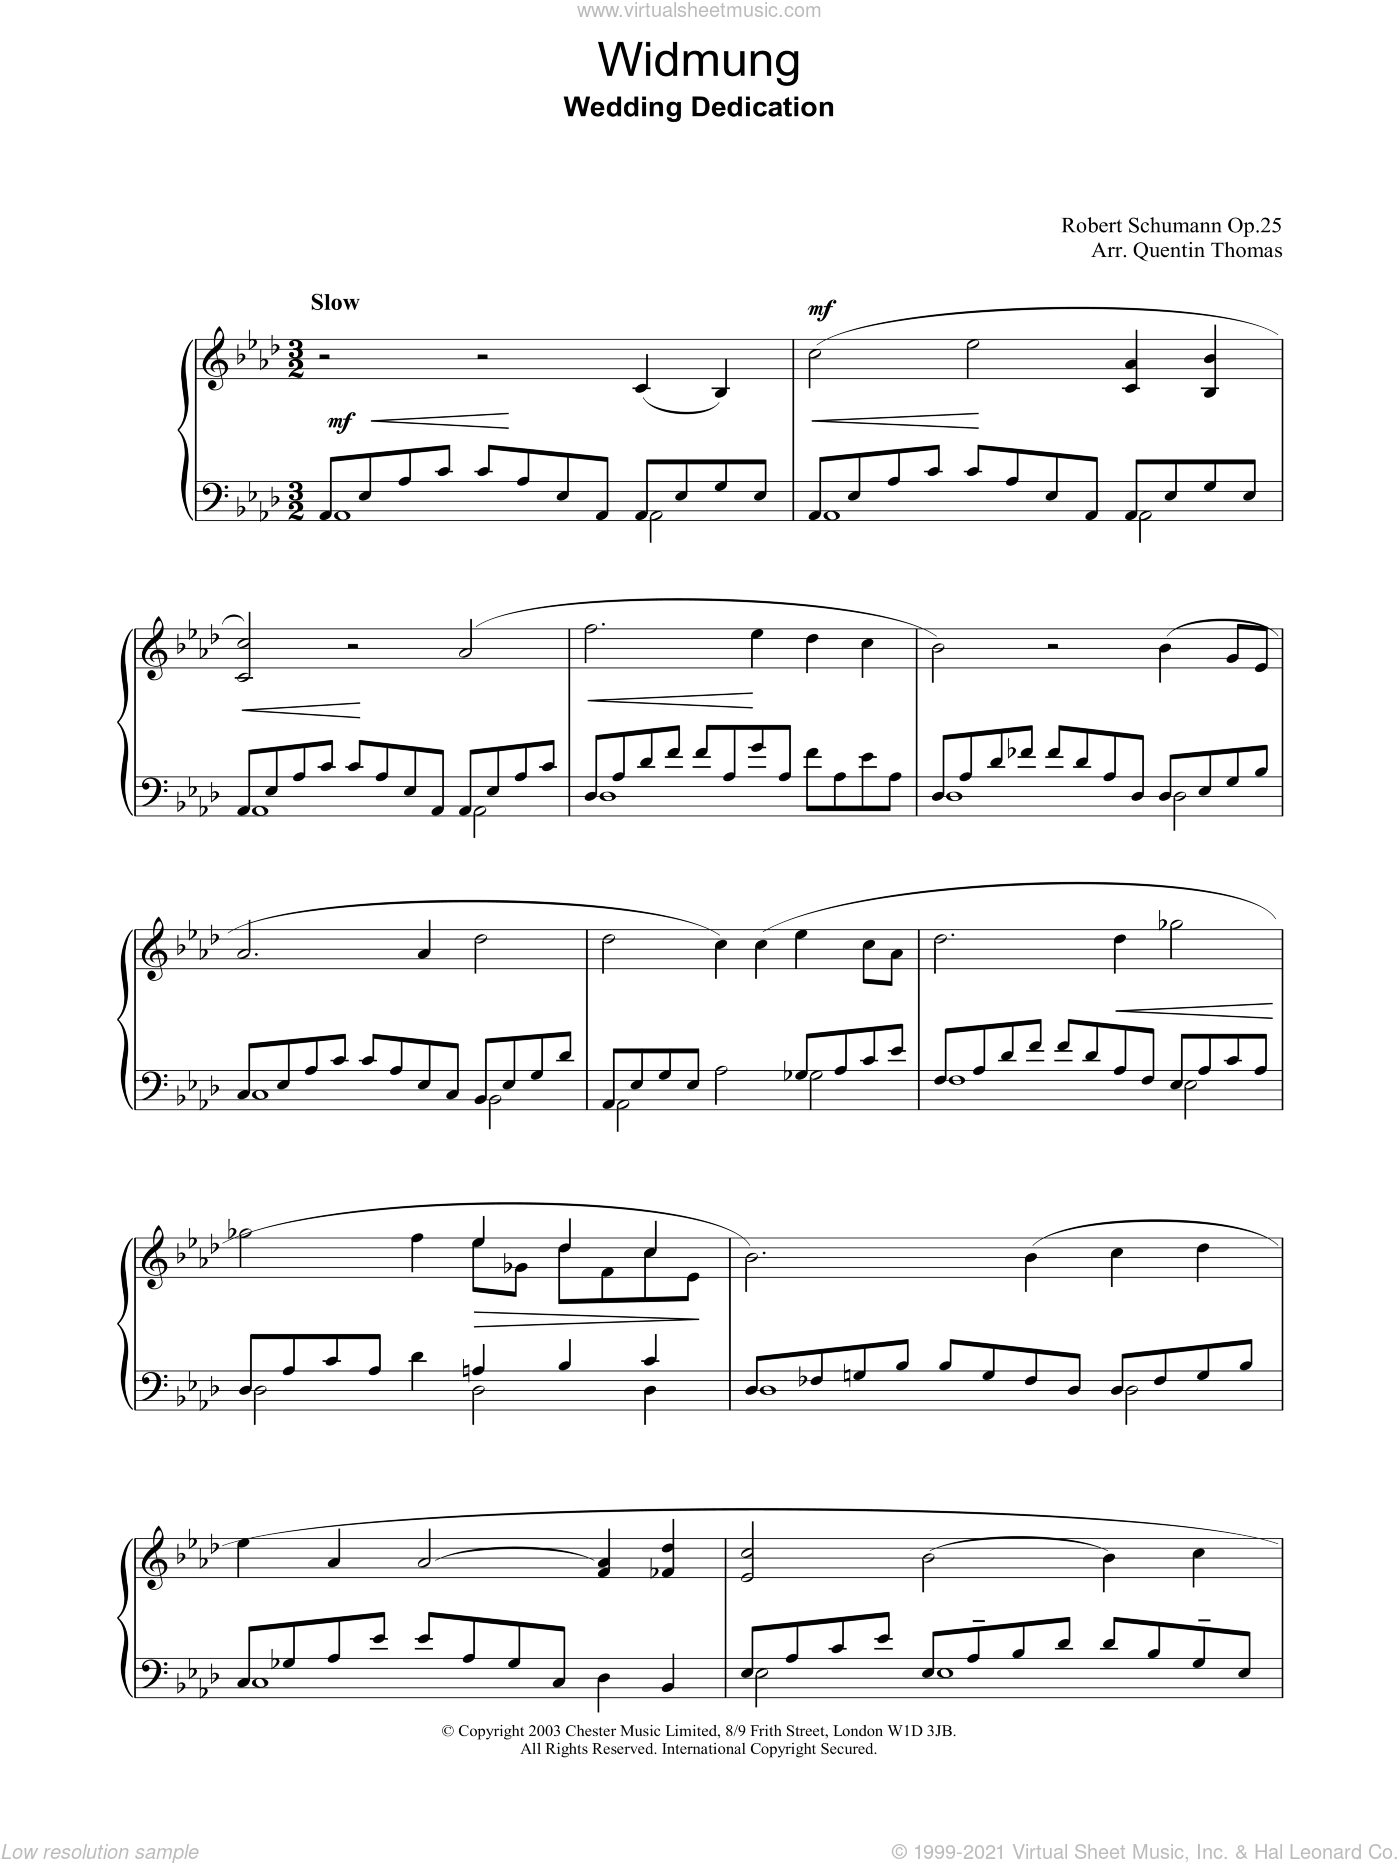 Widmung sheet music for piano solo by Robert Schumann